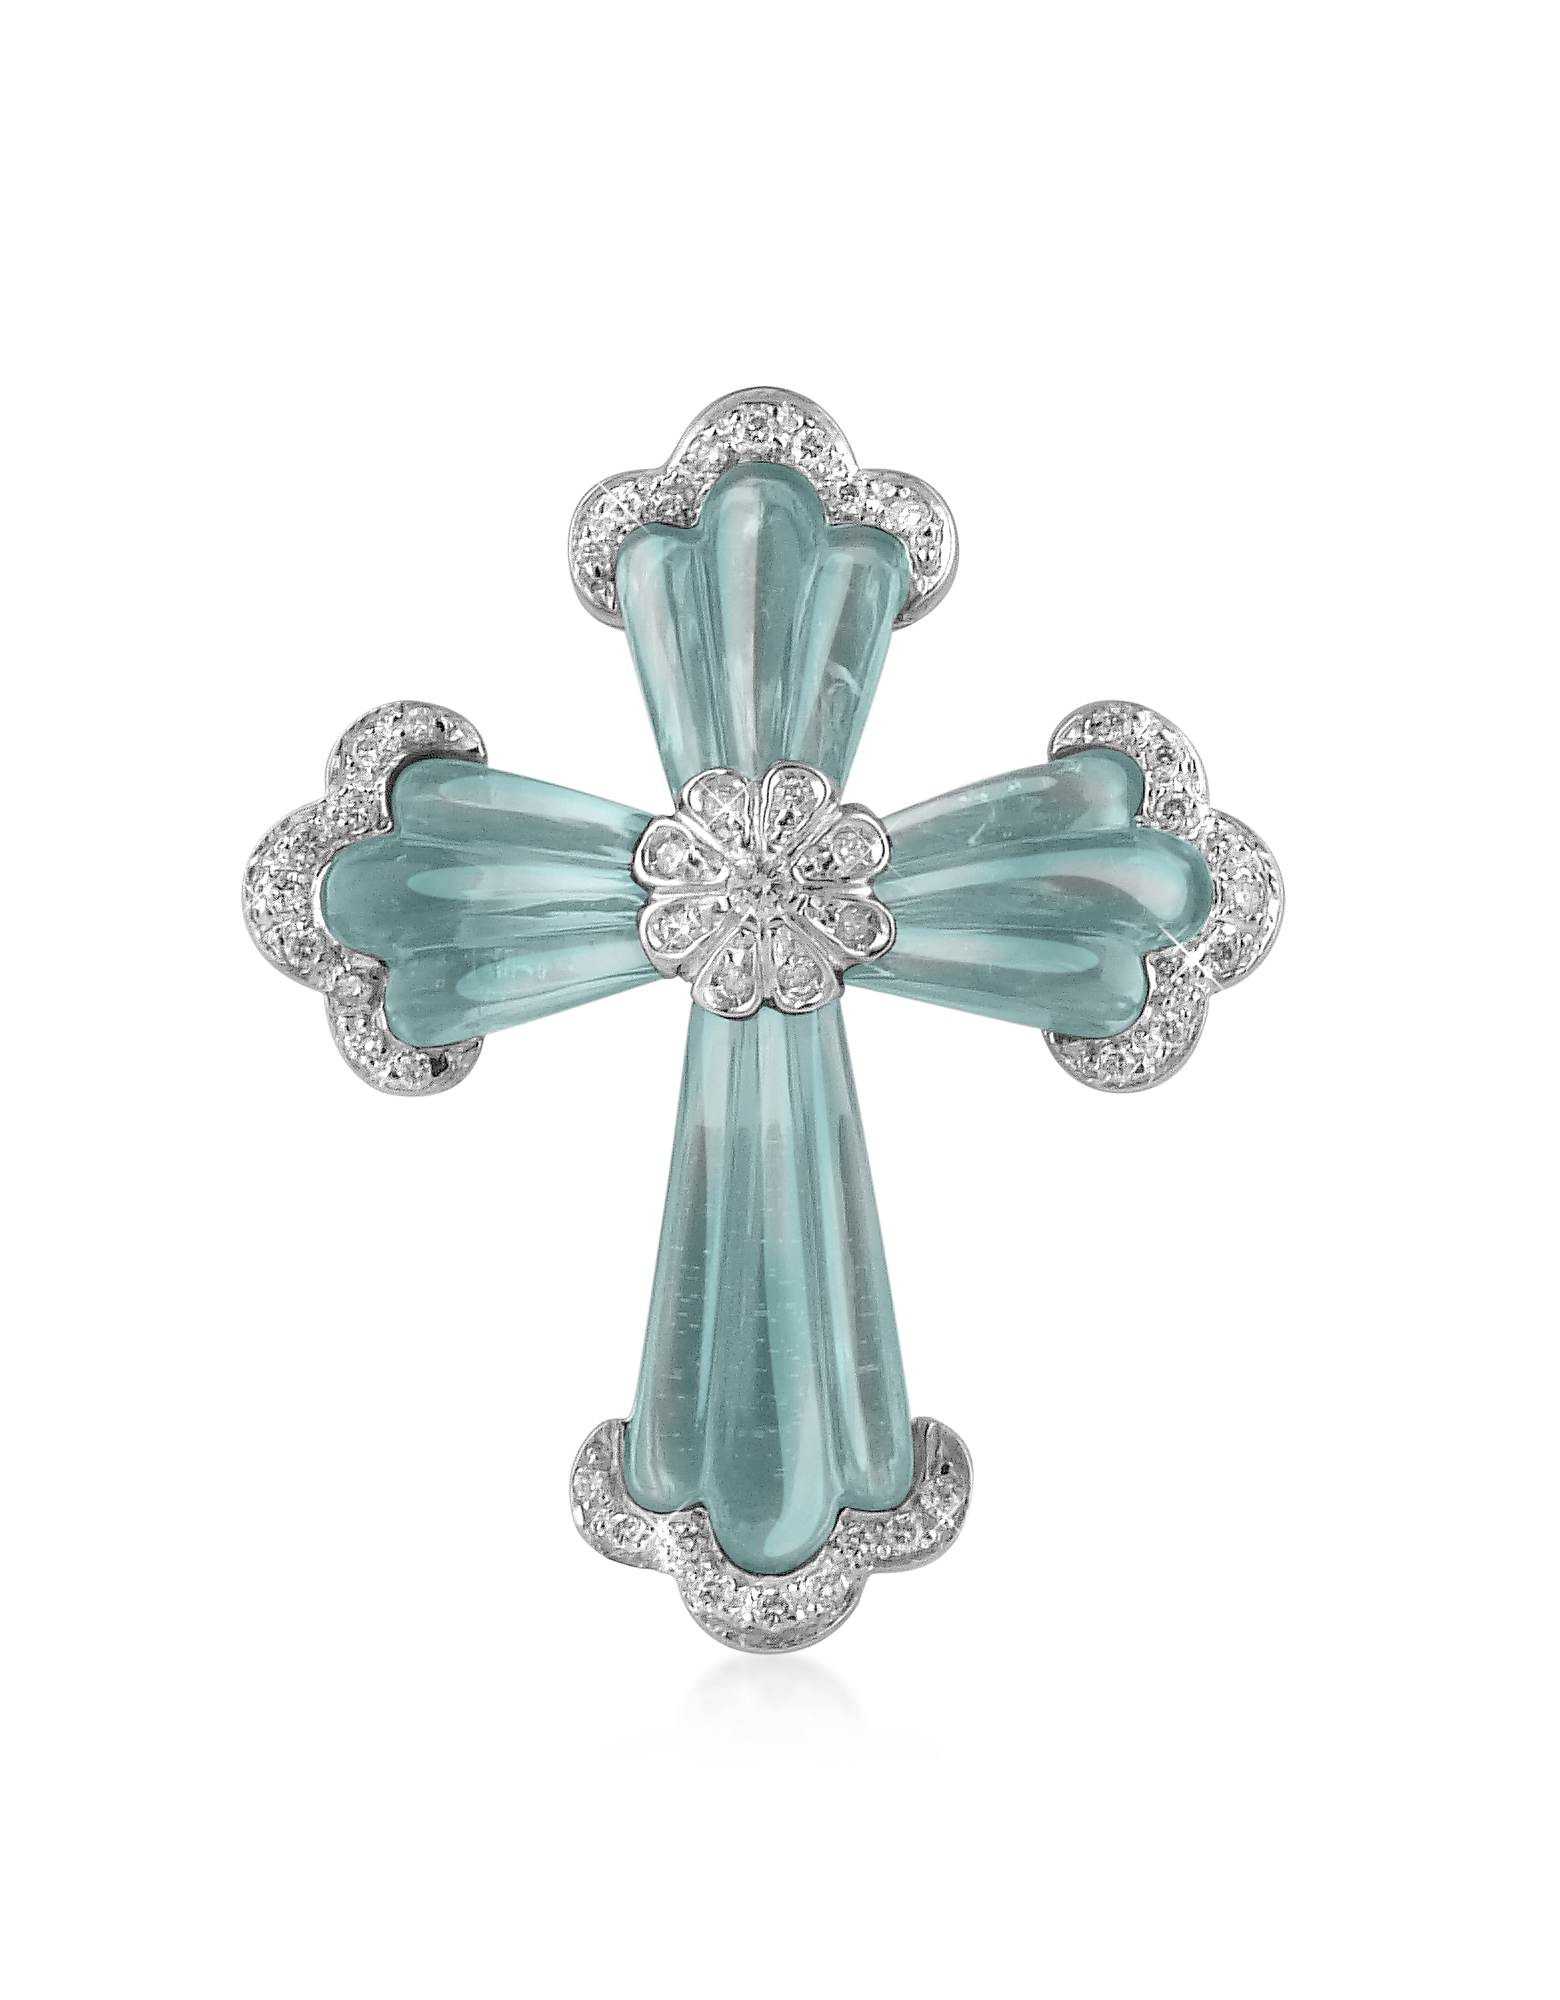 Roma Imperiale Necklaces, Carved Gemstone 18K Gold and Diamond Cross Pendant